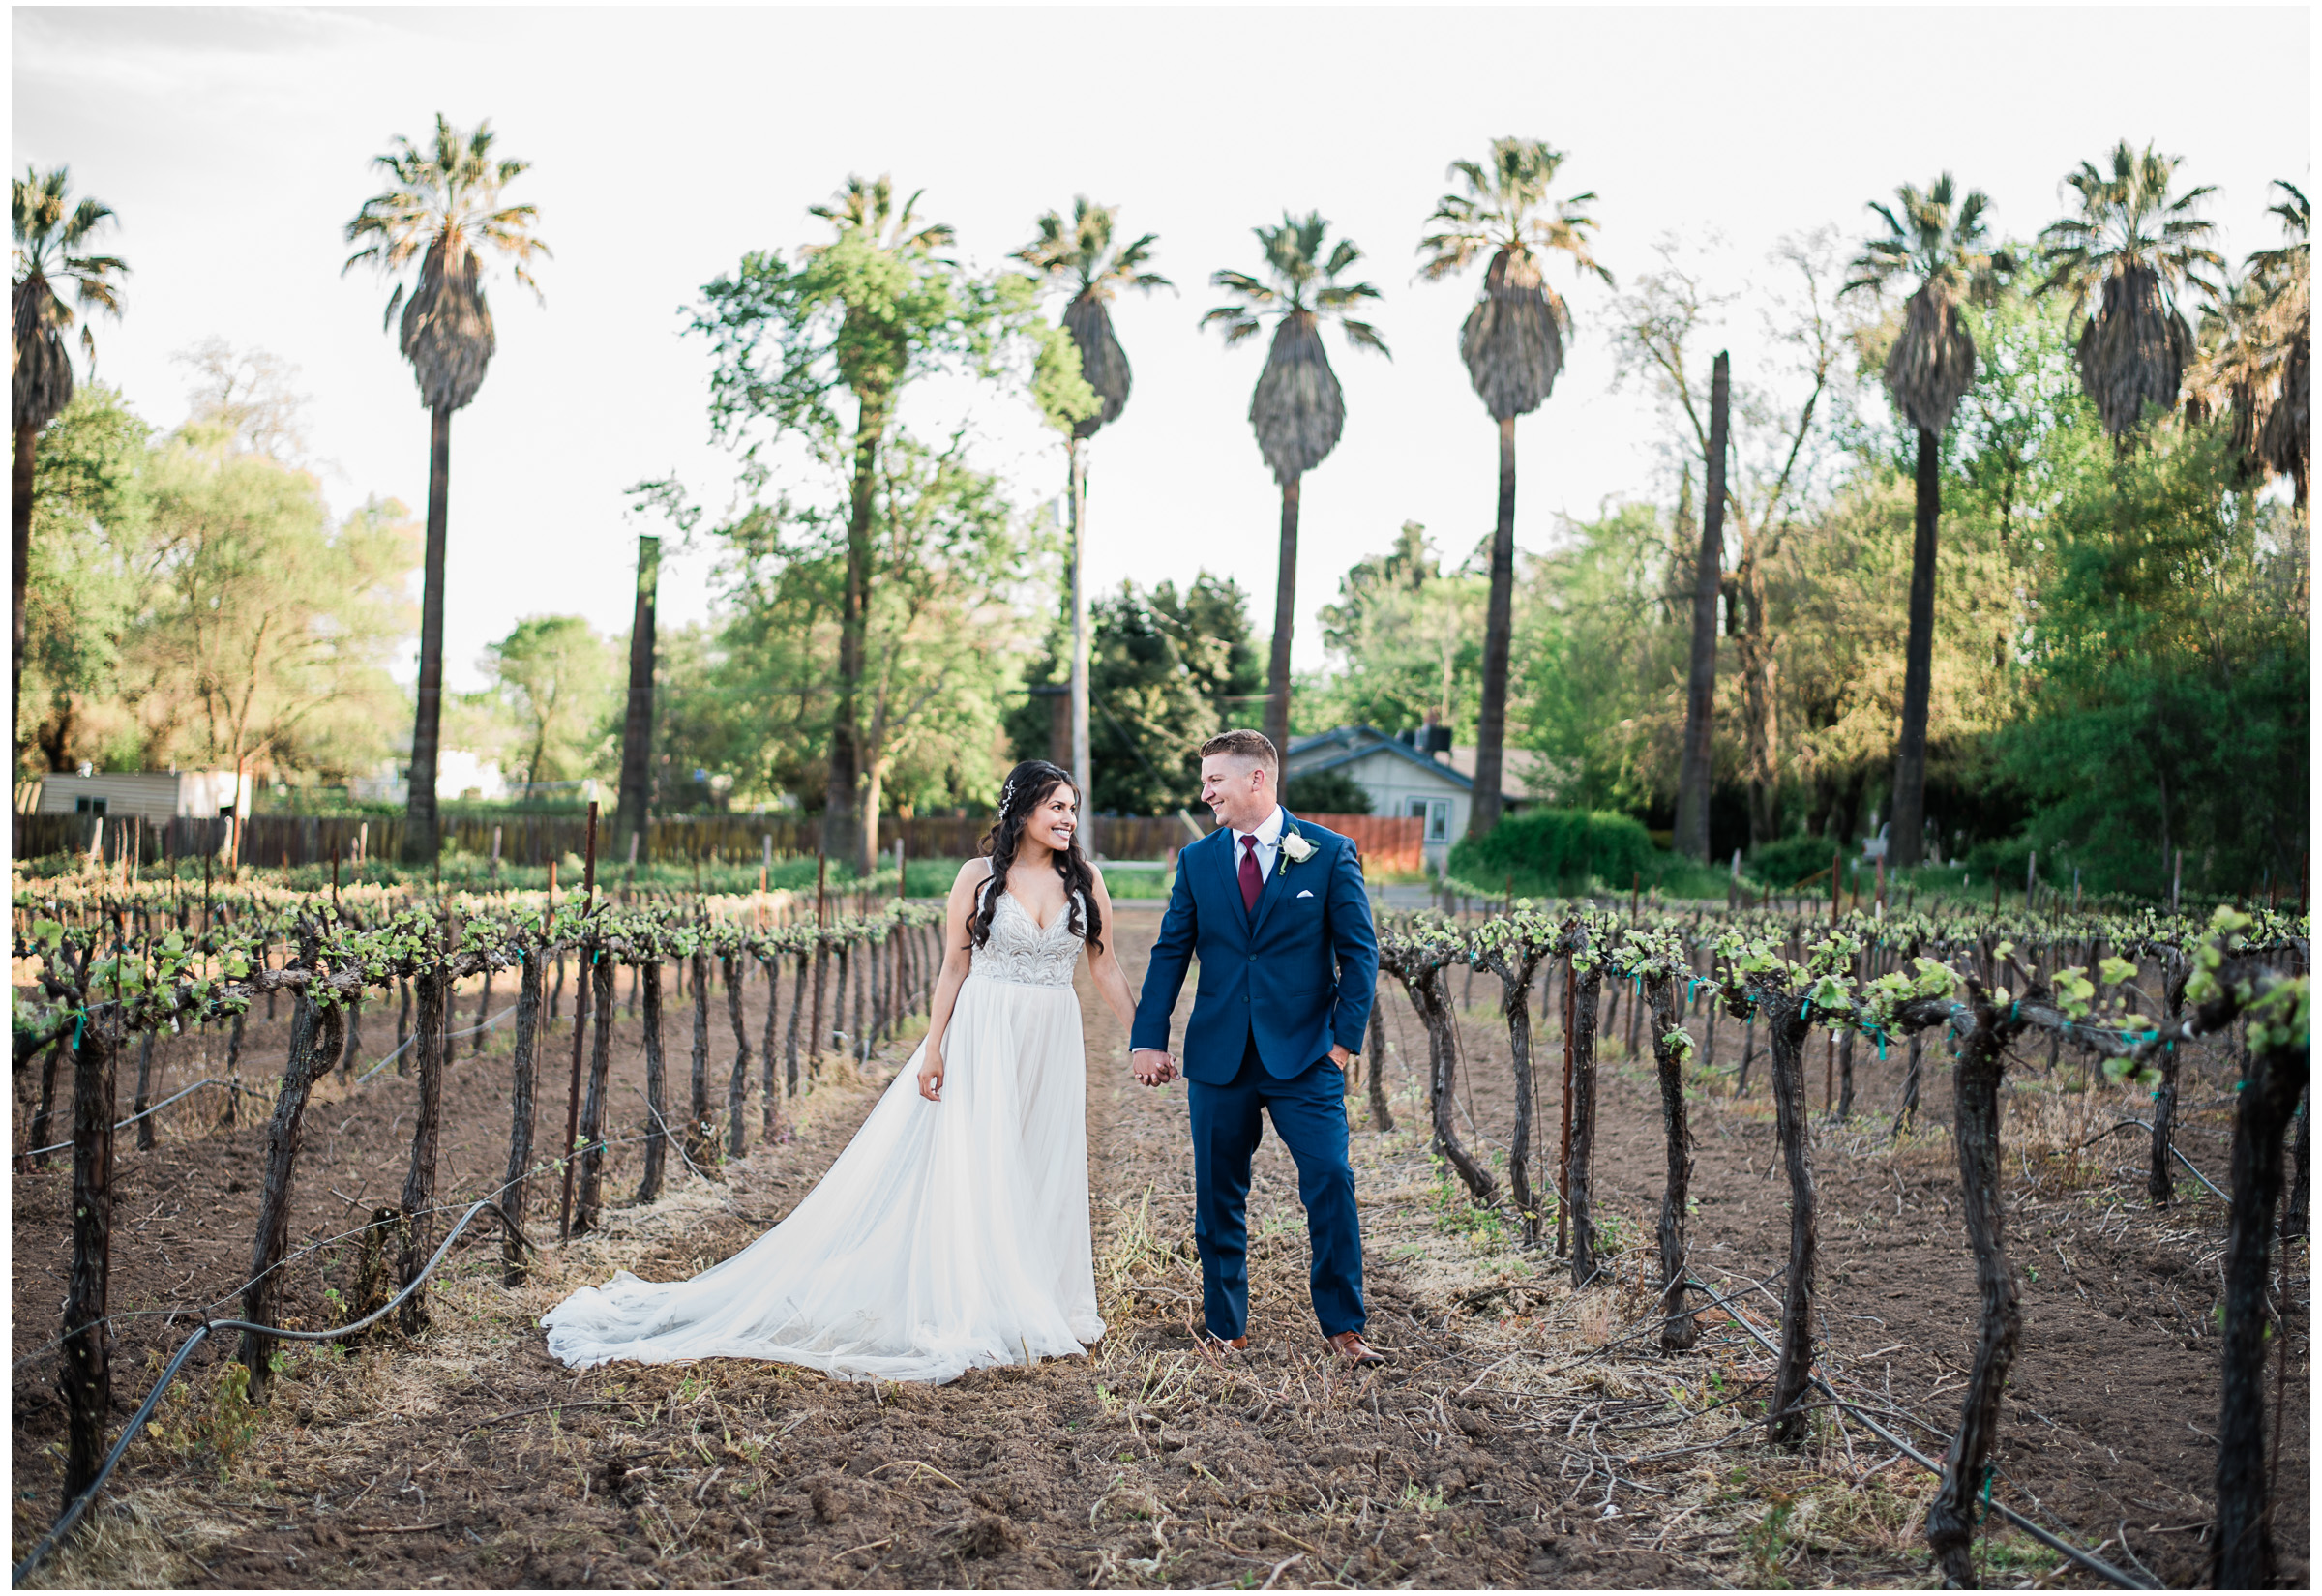 Lincoln Wedding - Sacramento Photographer - Rock Hill Winery - Justin Wilcox Photography - 1.jpg